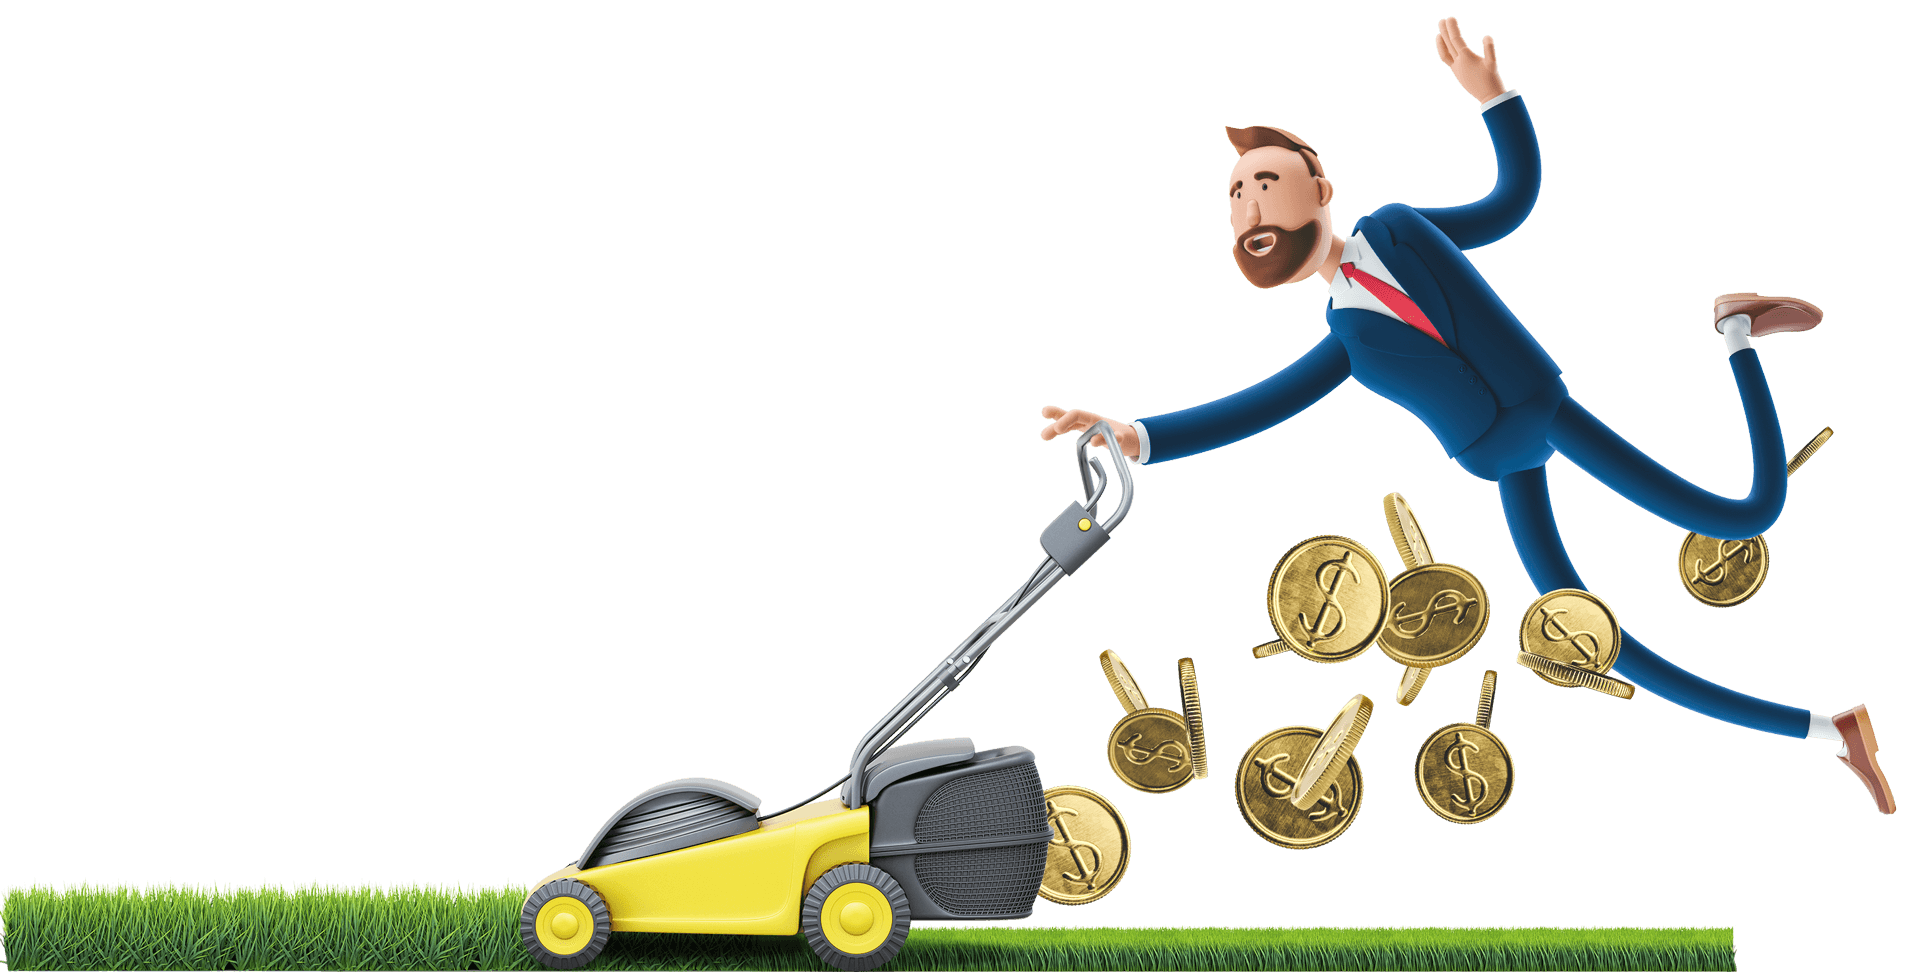 Billy mowing the grass for money